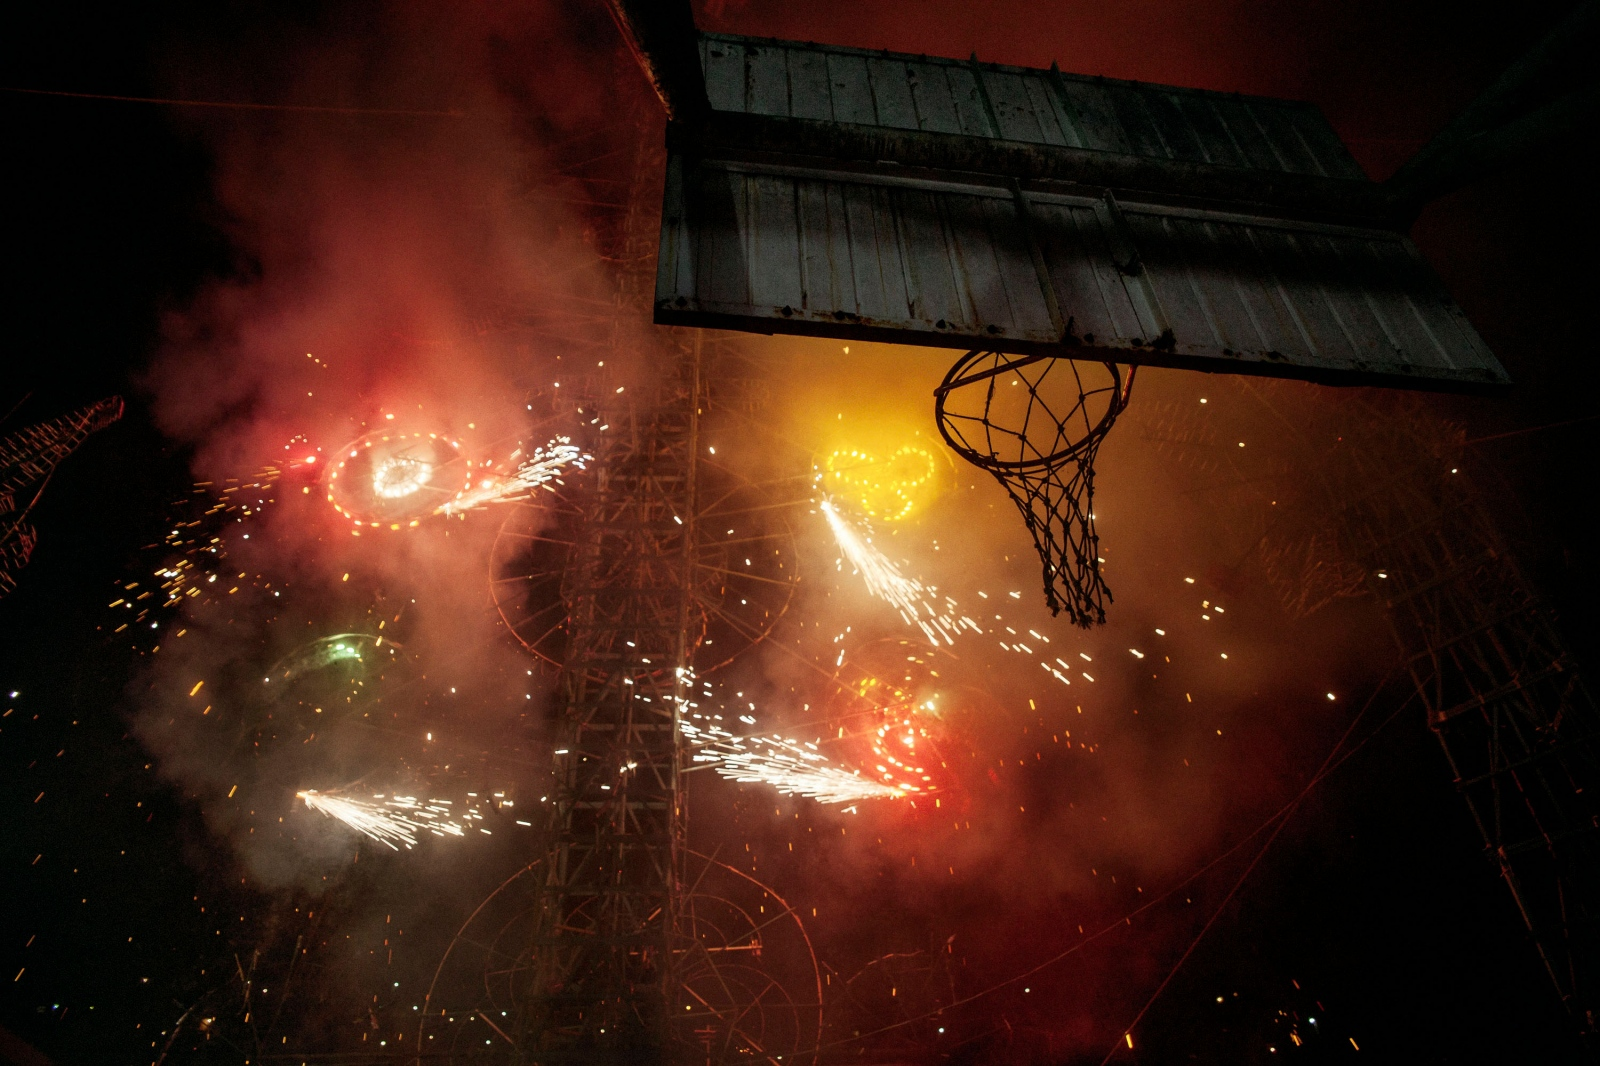 SAN CRISTÓBAL LACHIRIOAG, NOVEMBER 19, 2011. The firework castle explodes on the basketball court.